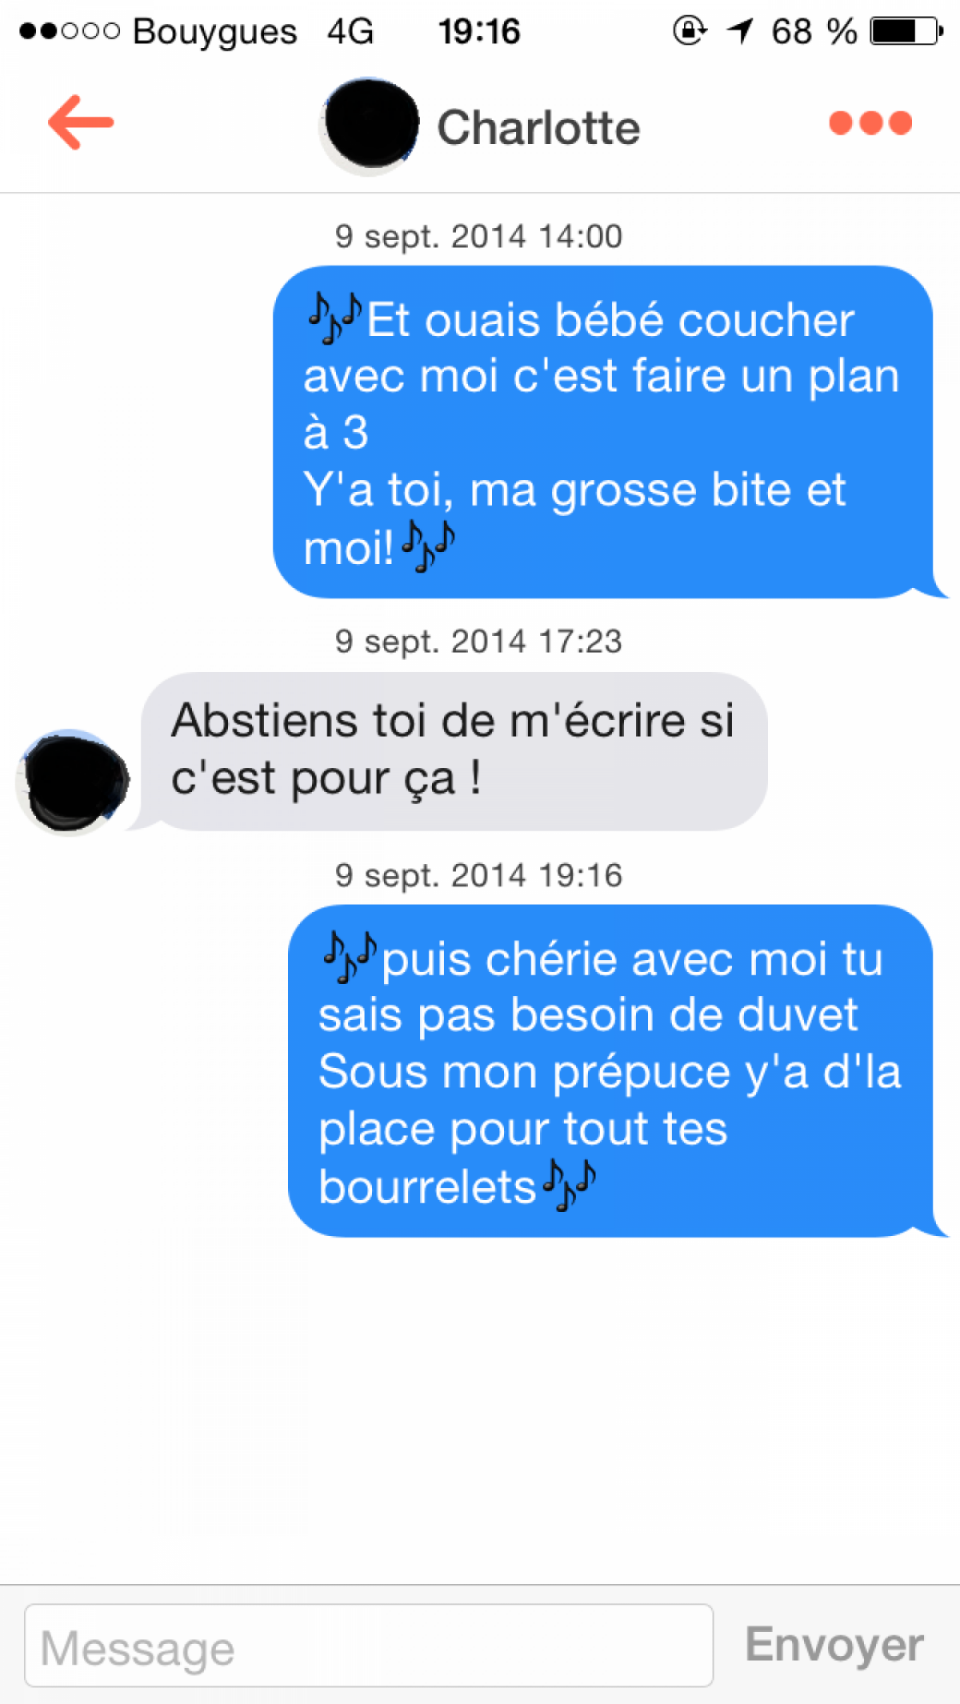 Telecharger tinder site de rencontre